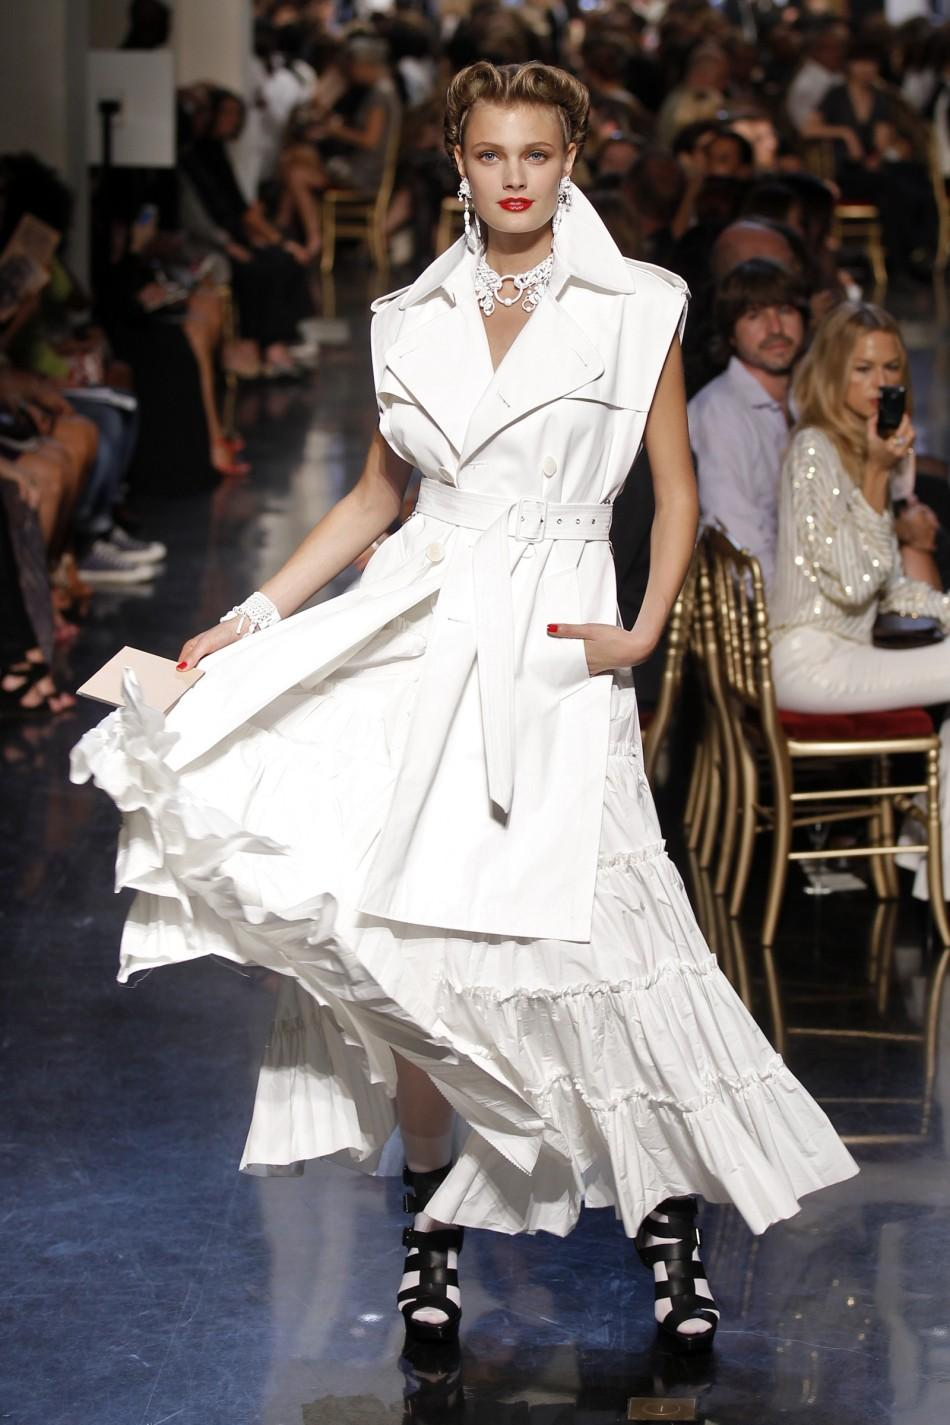 The Fashion World of Jean Paul Gaultier : A Thematic Display of Couture Ensembles.